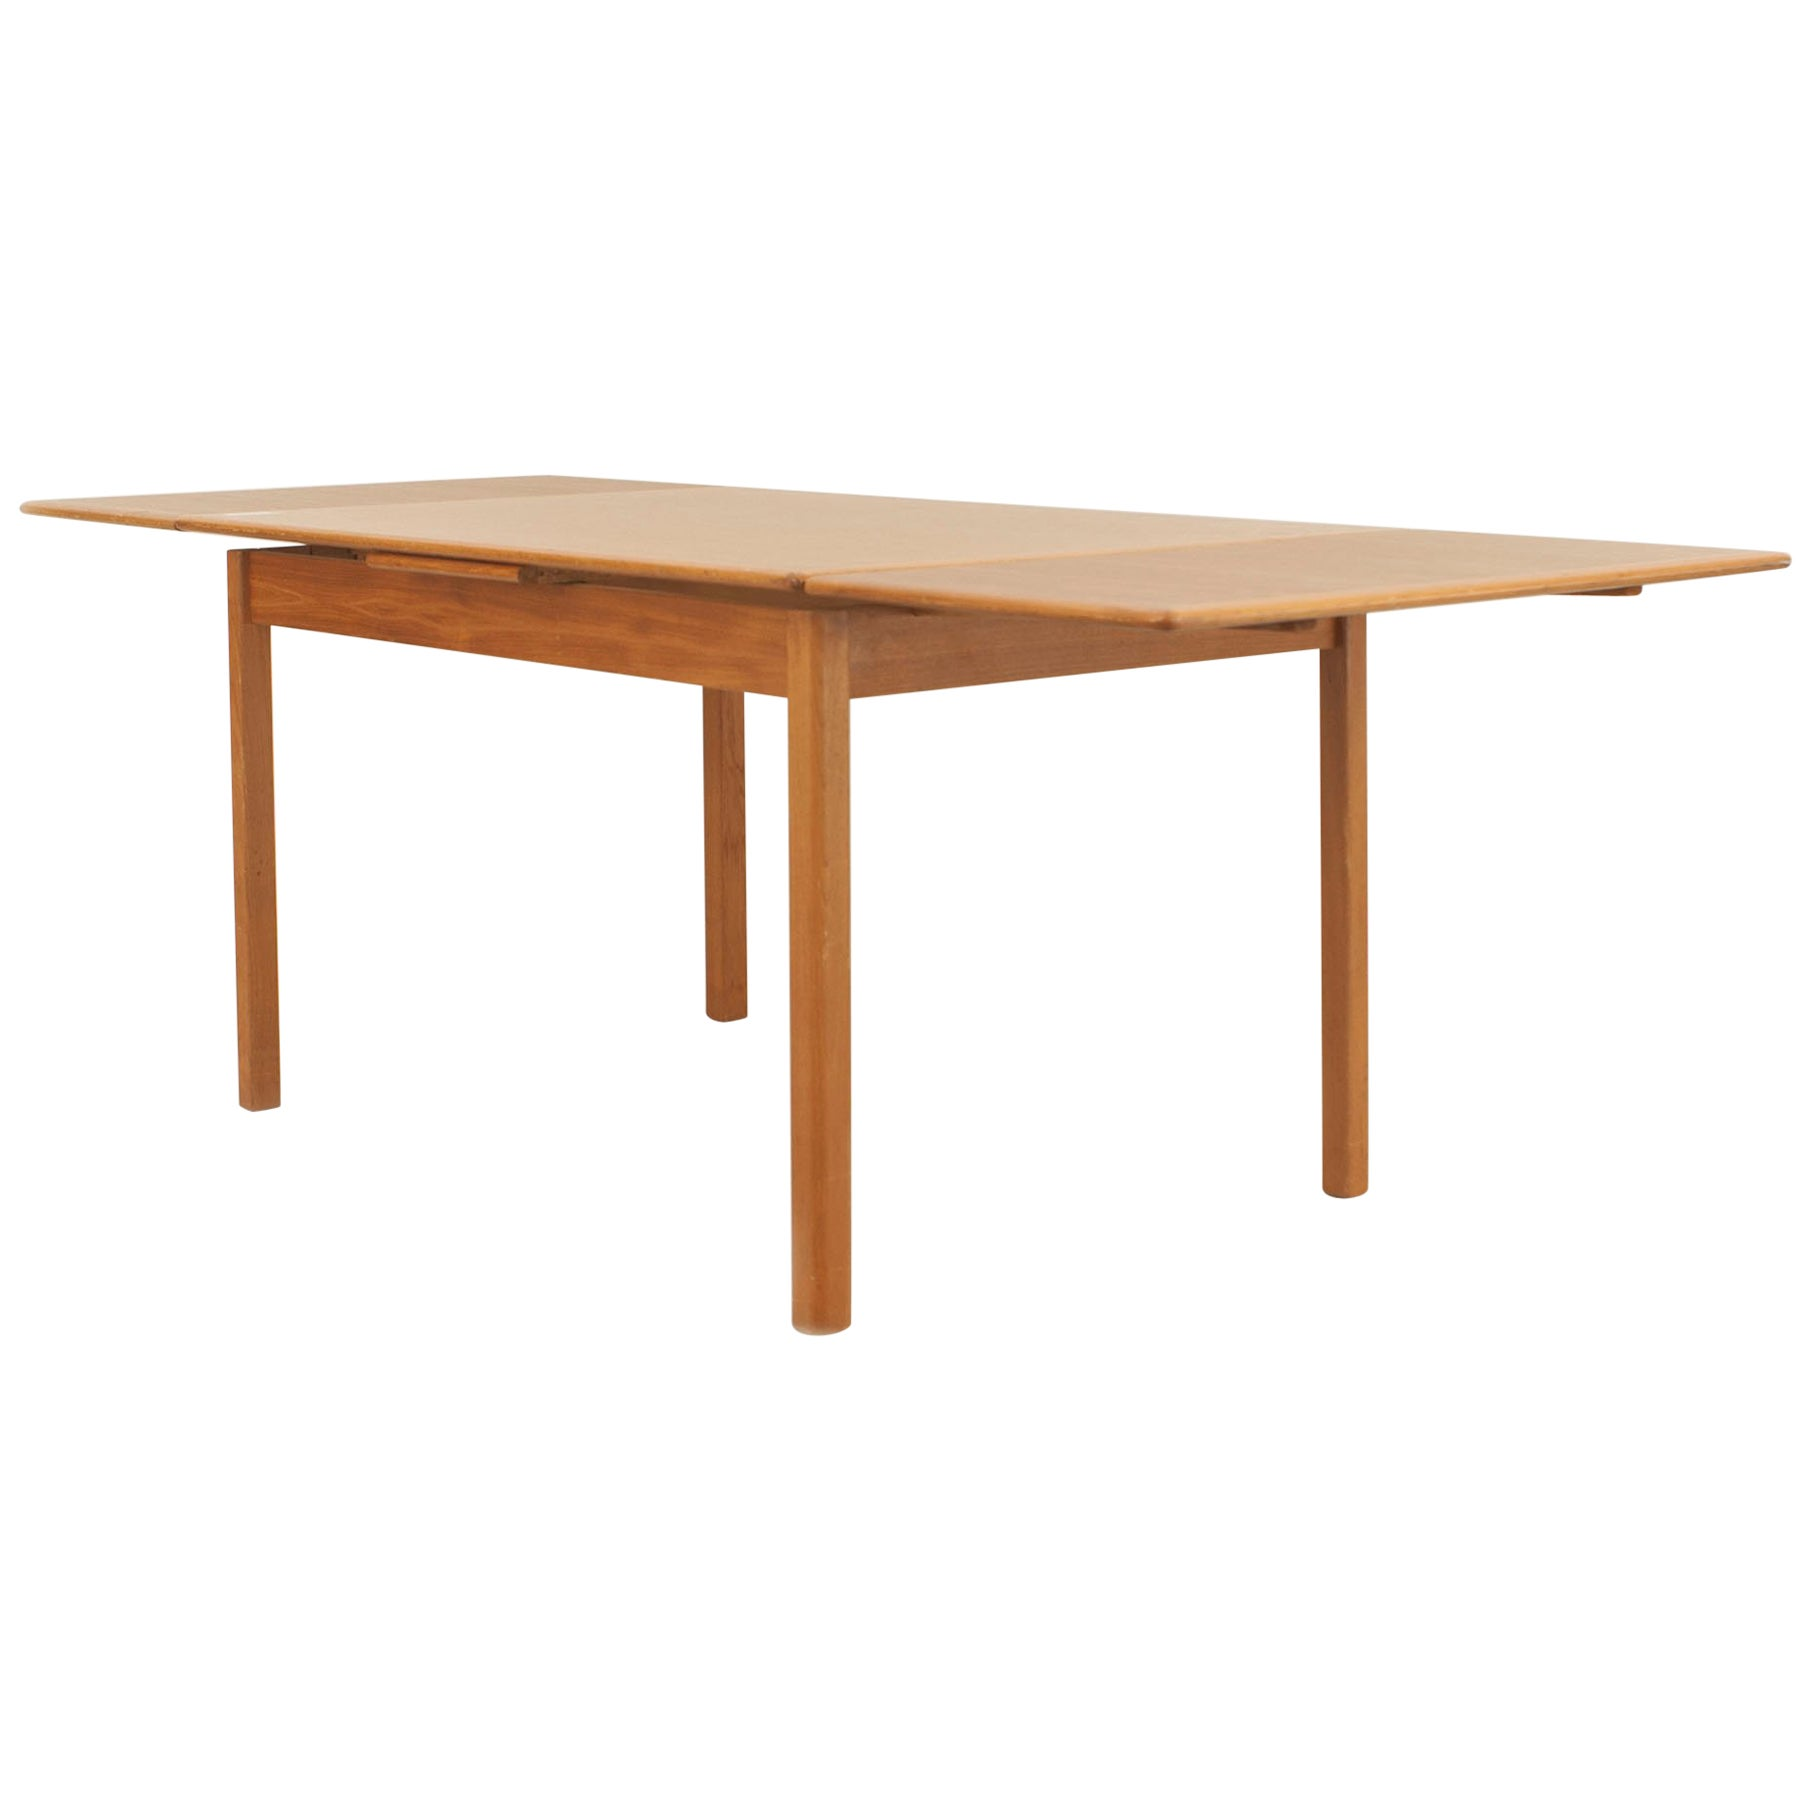 Danish Post-War Design Expandable Teak Dining Table